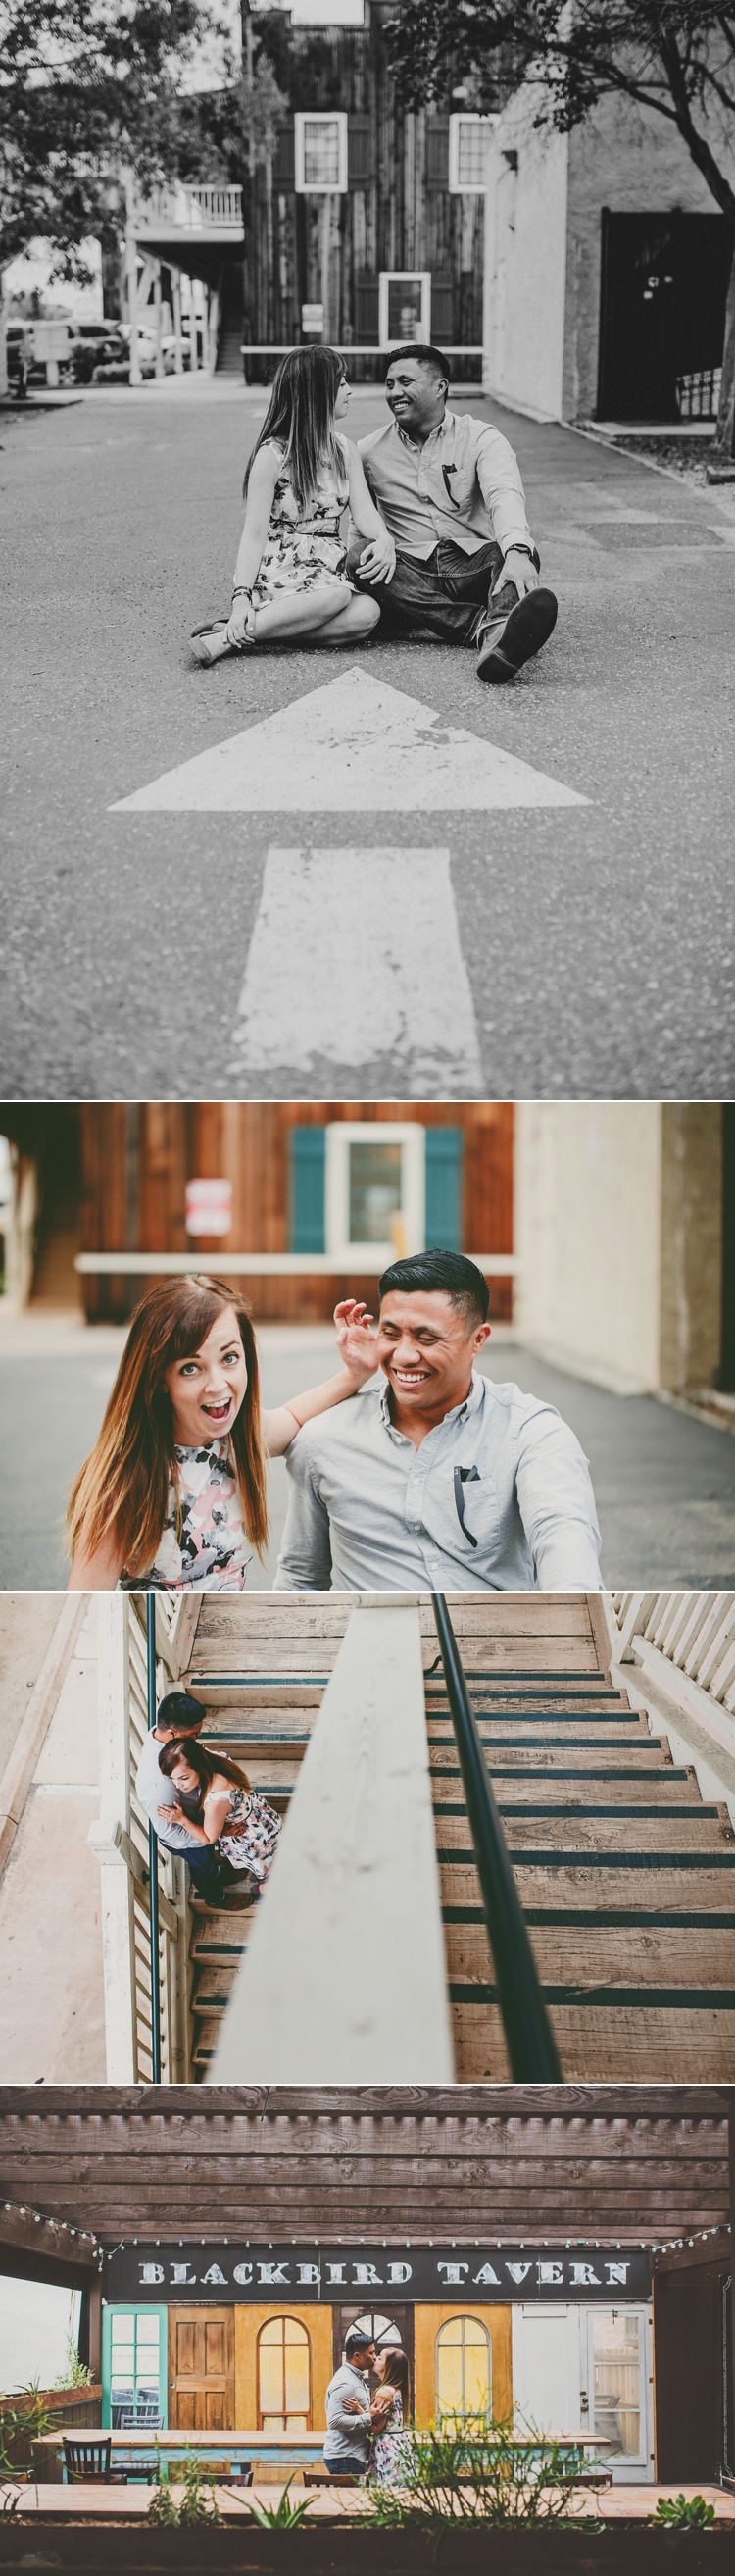 Old Town Temecula Engagement Photos